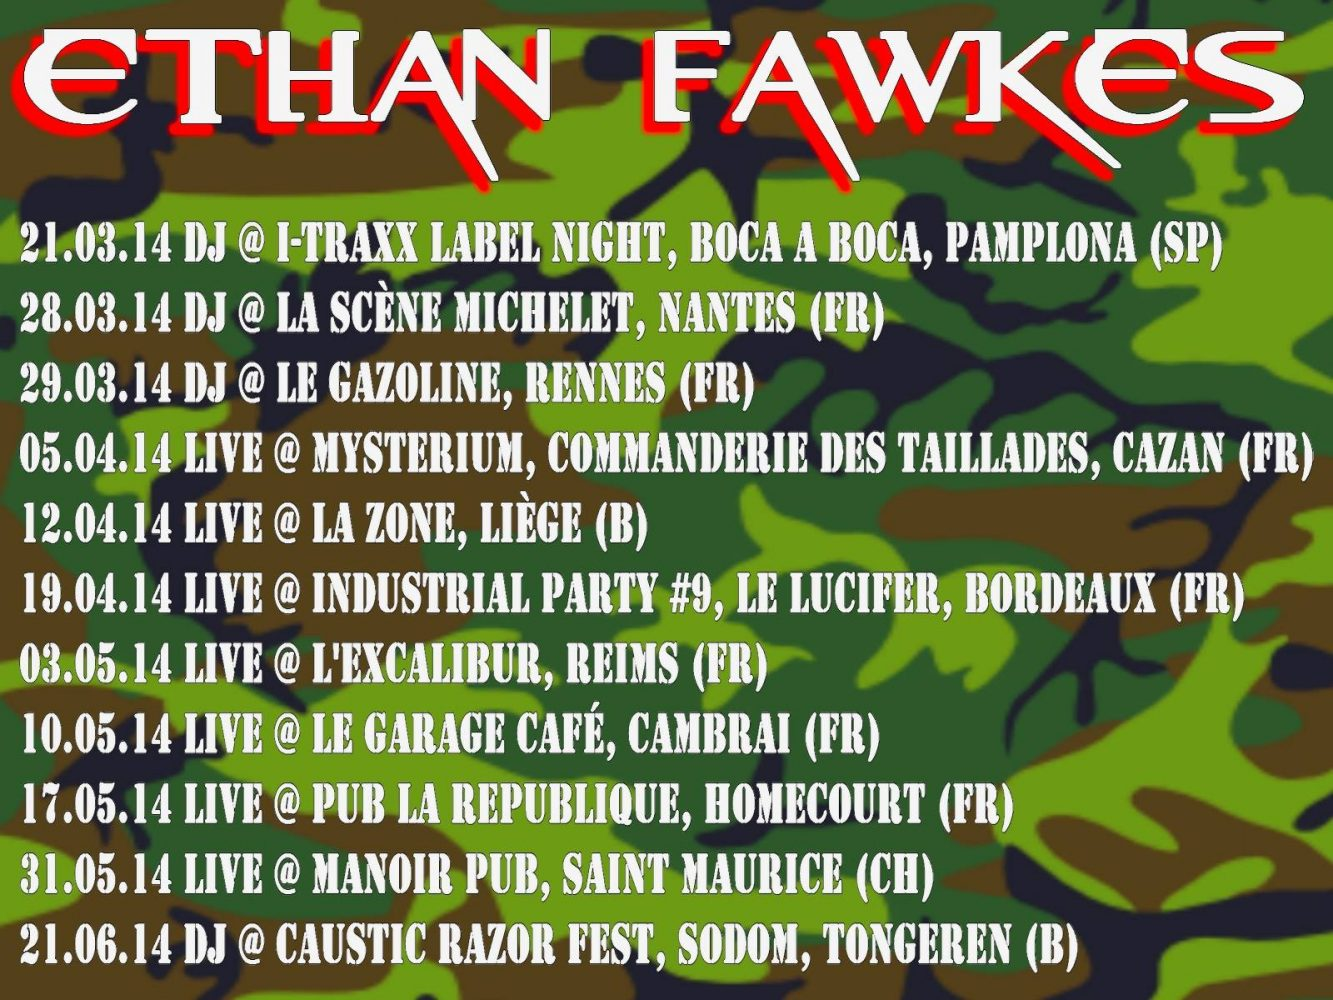 Ethan Fawkes on tour